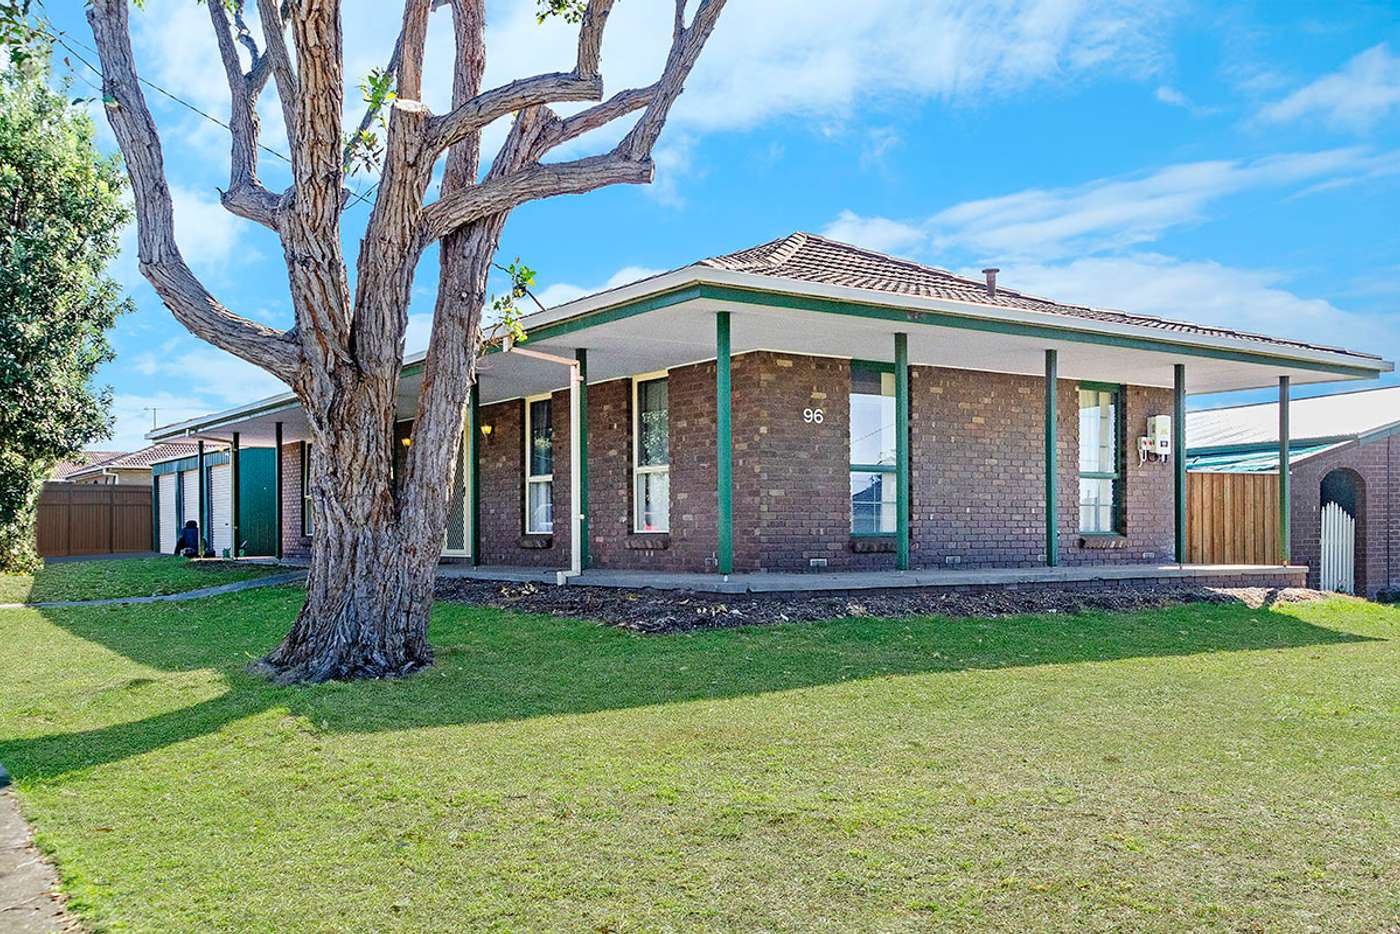 Main view of Homely house listing, 96 Barkly Street, Portland VIC 3305